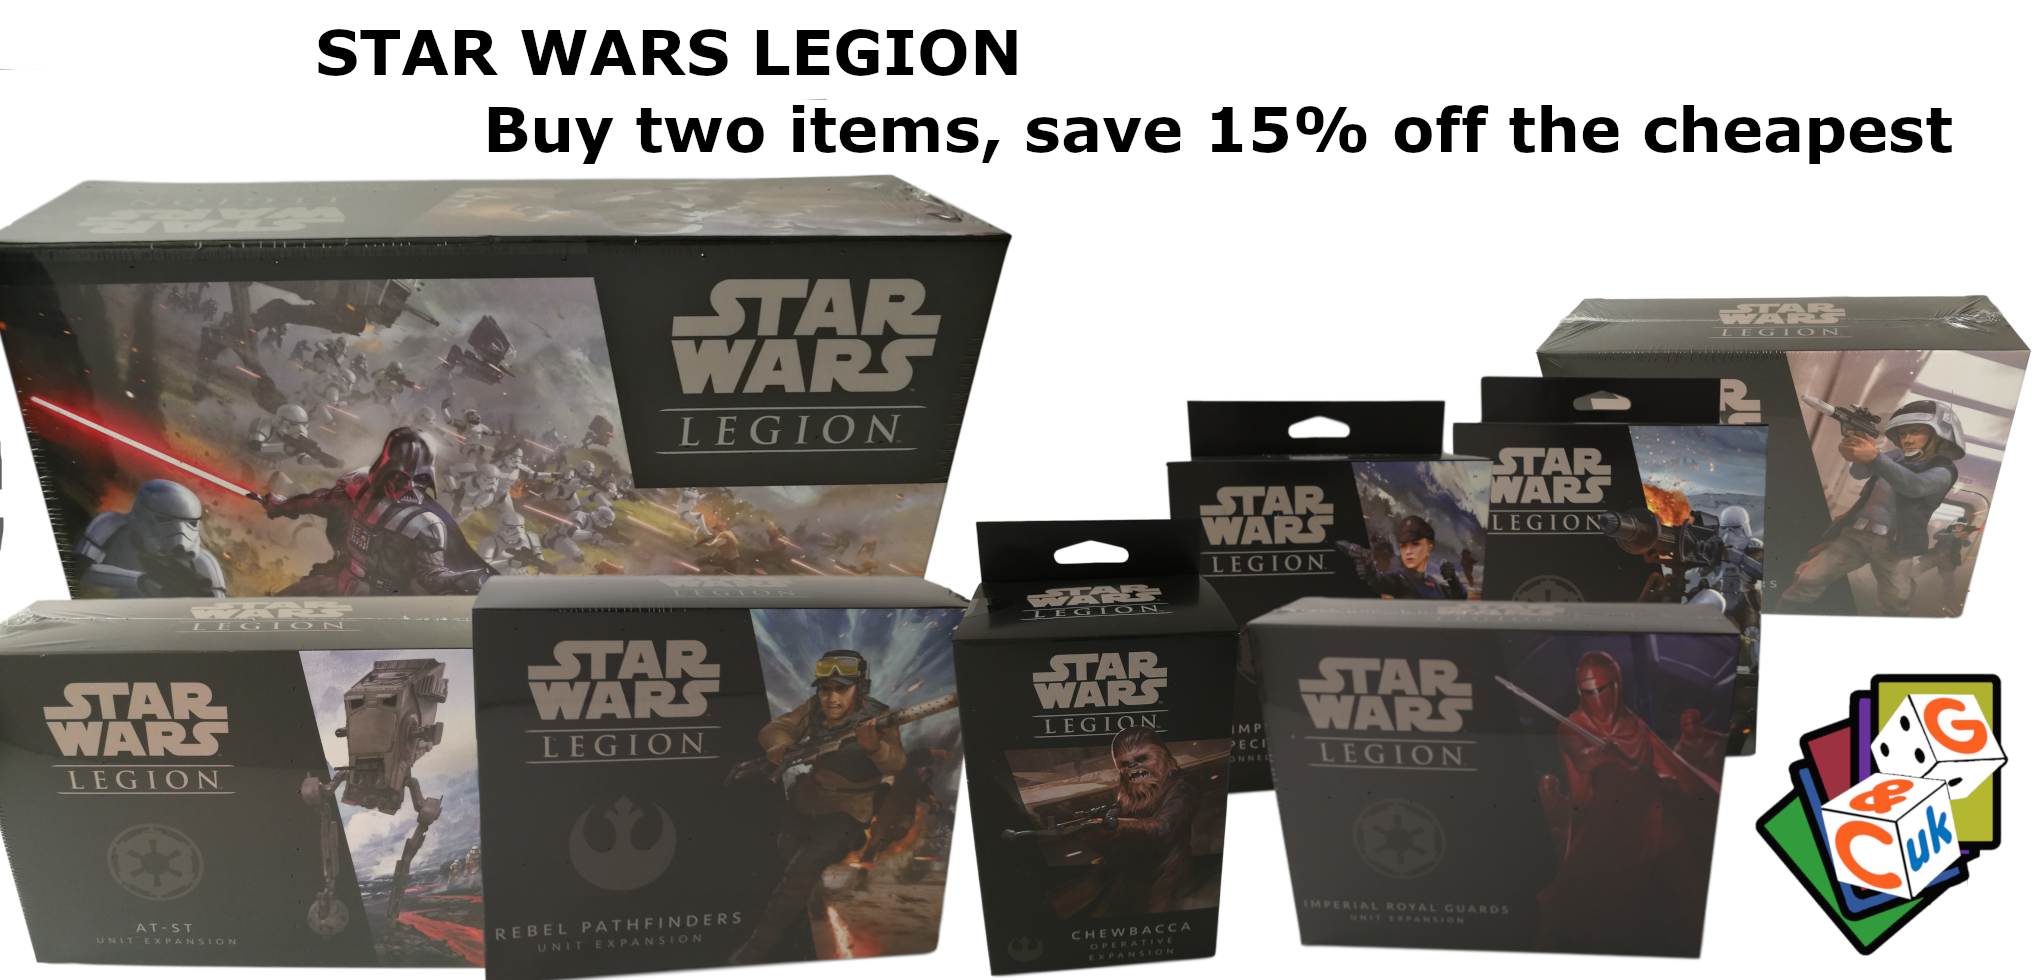 Star Wars Legion savings - Buy two items, save 15% off the cheapest